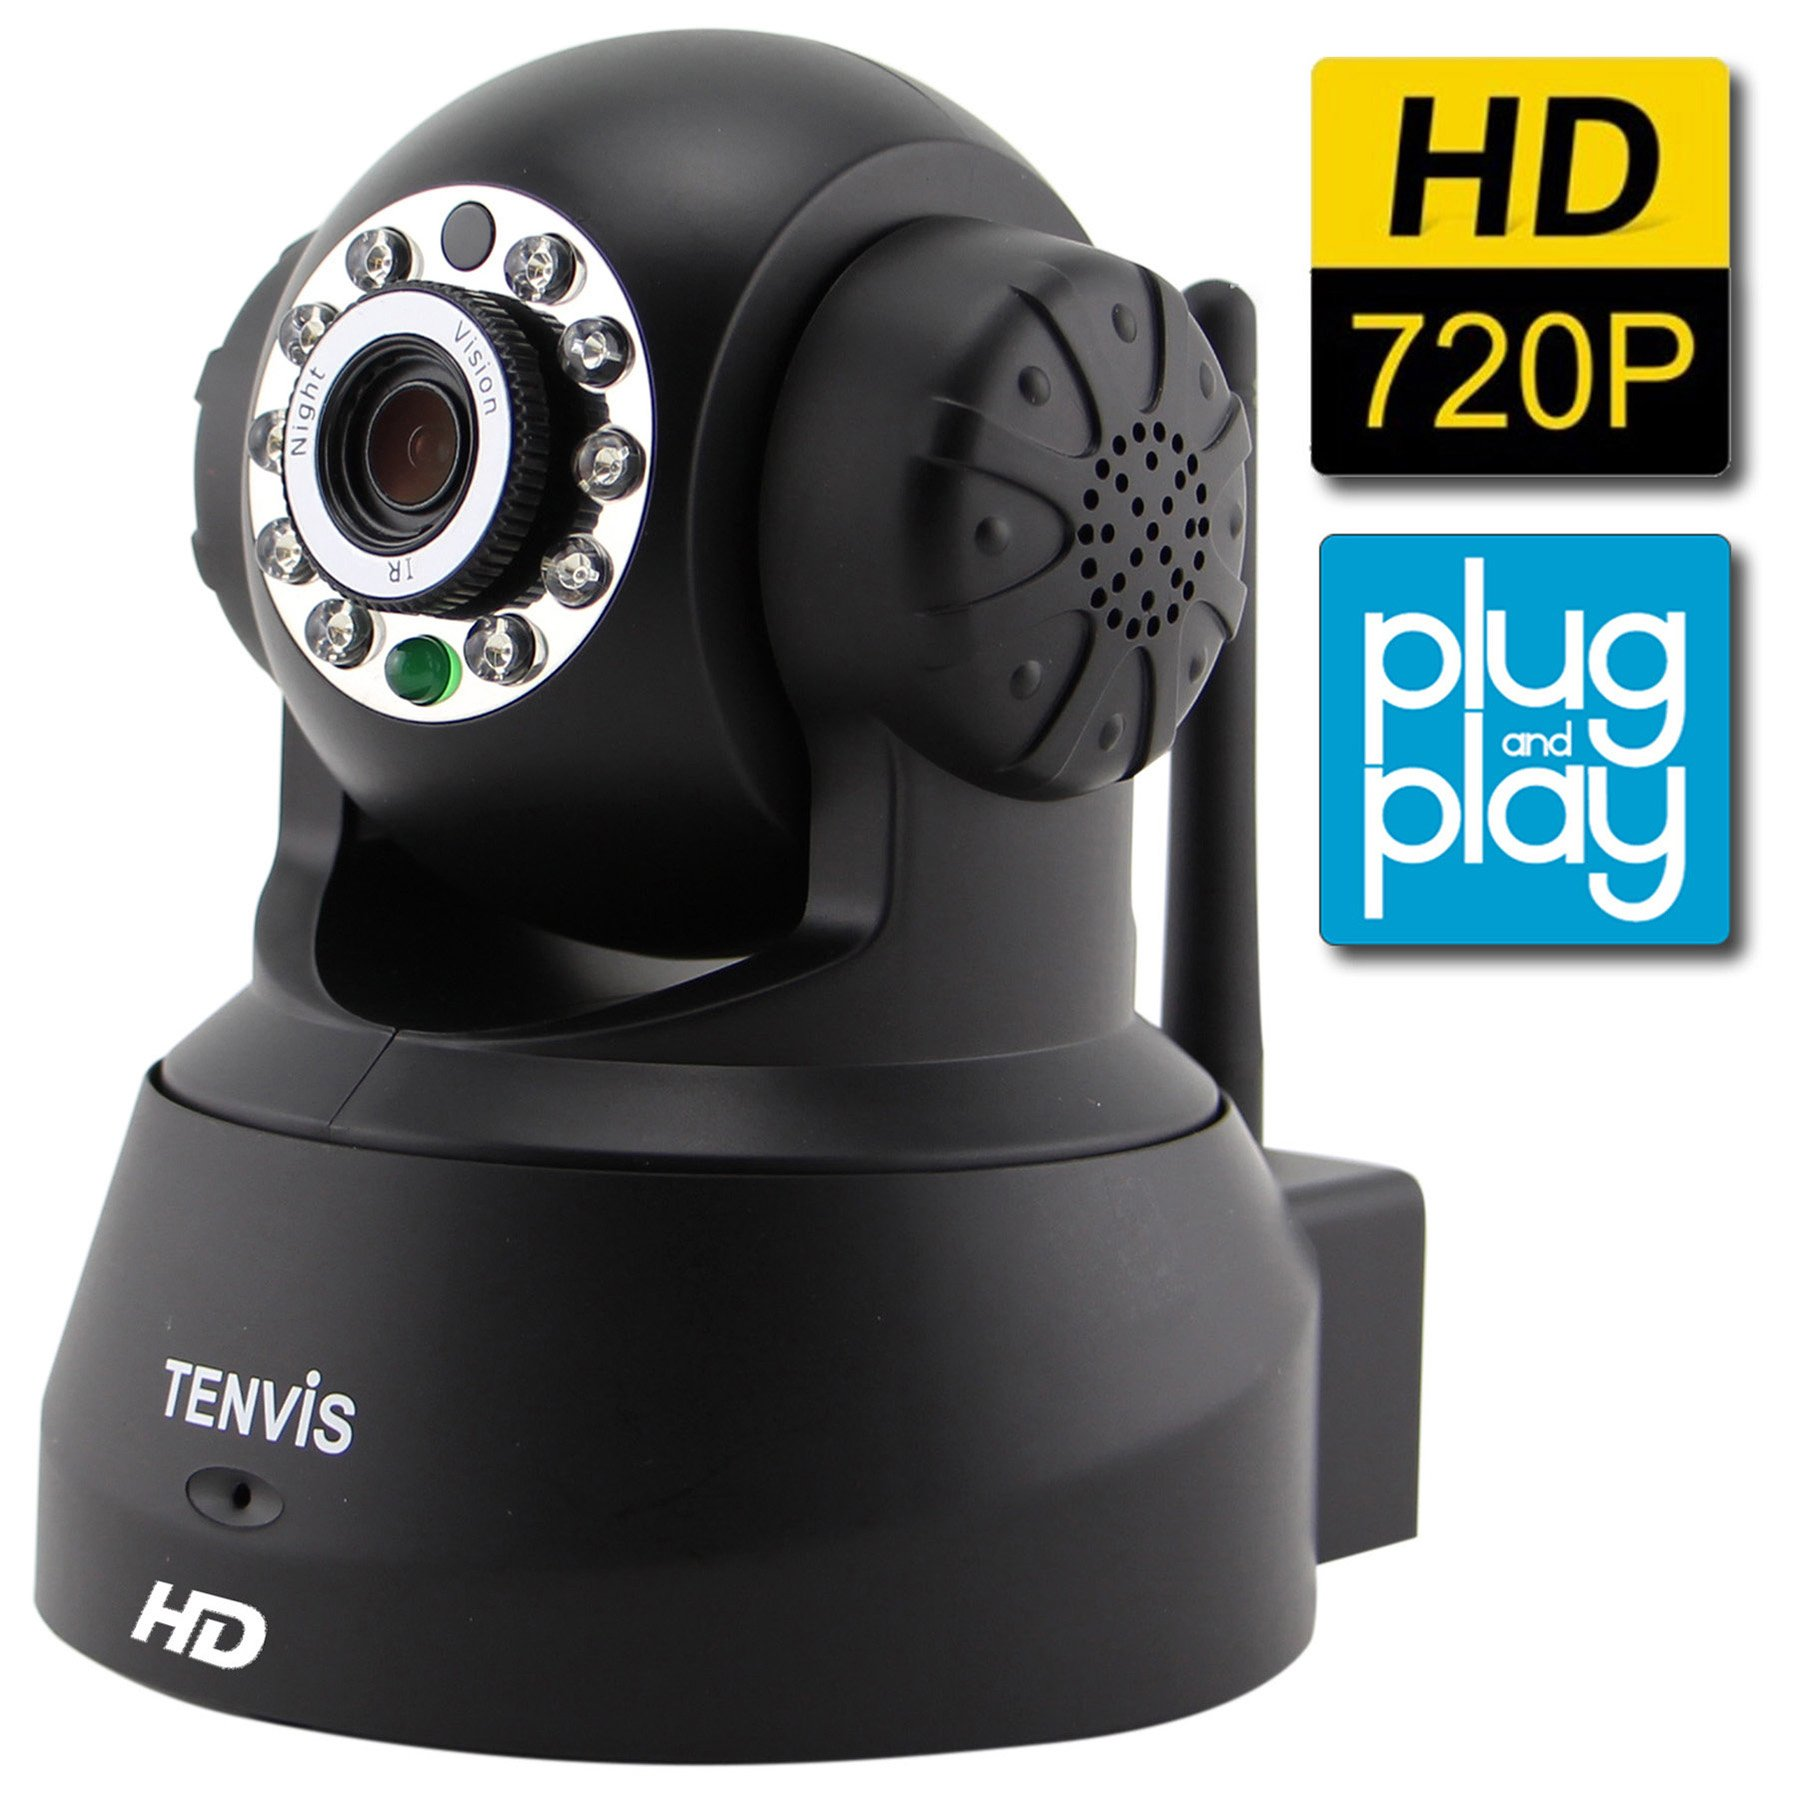 Smart Security Camera, Baby Monitor, TENVIS 720P H.264 Megapixel P2P Home WiFi Wireless Surveillance IP/Network Security Camera, Night Vision, Black